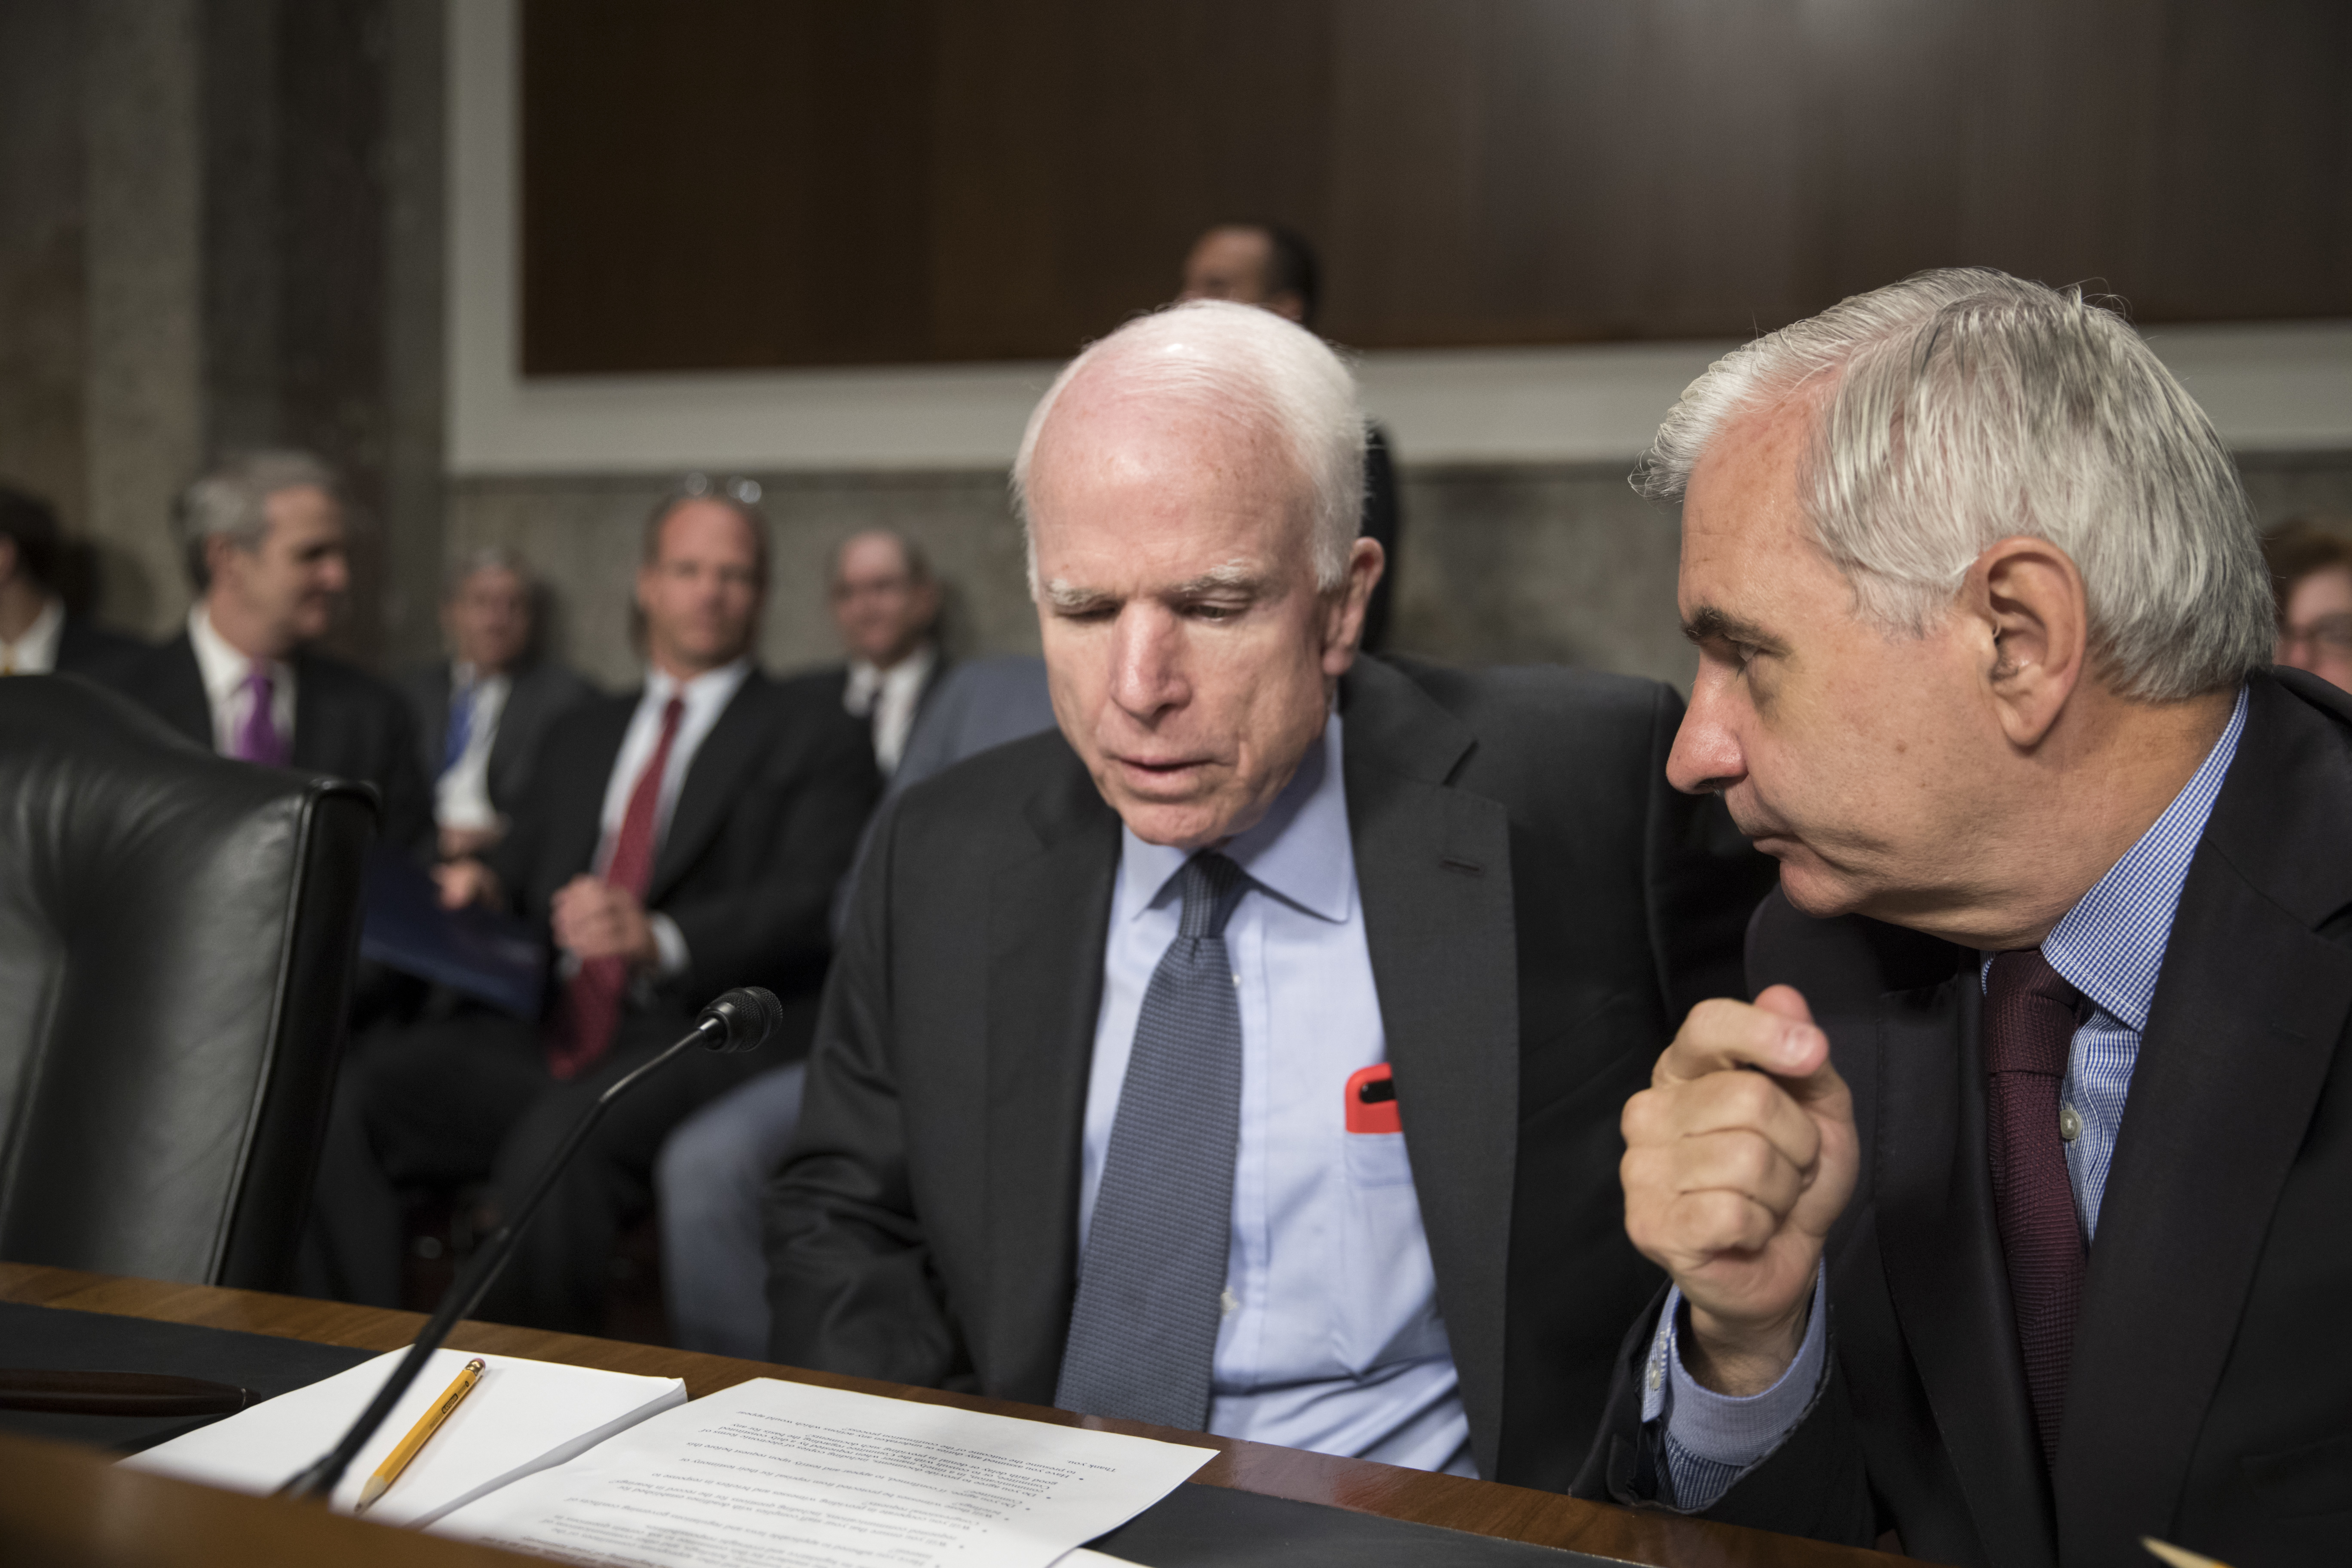 North Korea Detainee McCain U.S. Sen. John McCain, R-Ariz., left, confers with Sen. Jack Reed, D-R.I., at the start of a hearing at the Capitol in Washington in June.